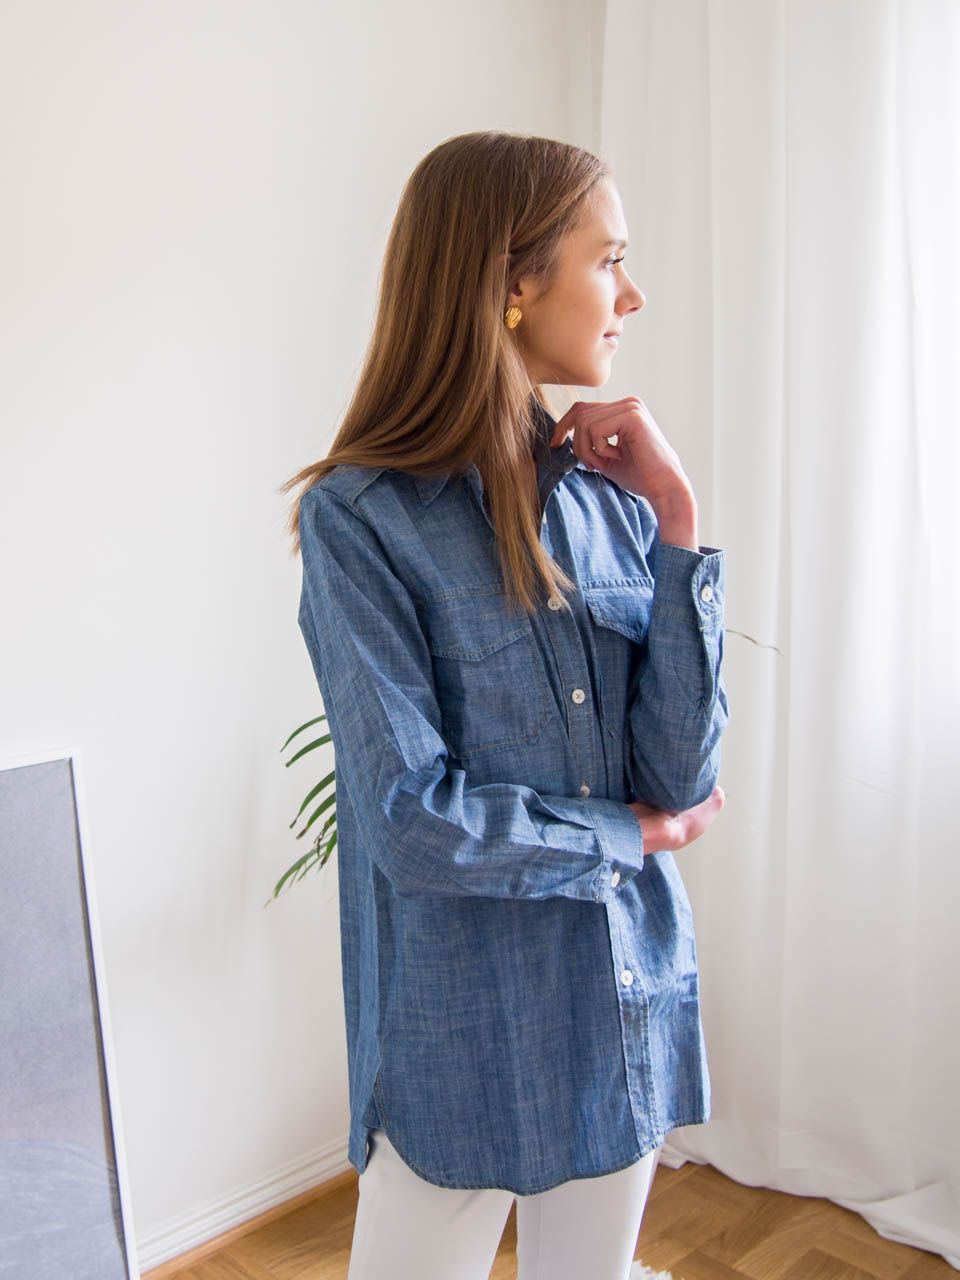 lala-brand-helsinki-scandinavian-denim-brand-finnish-fashion